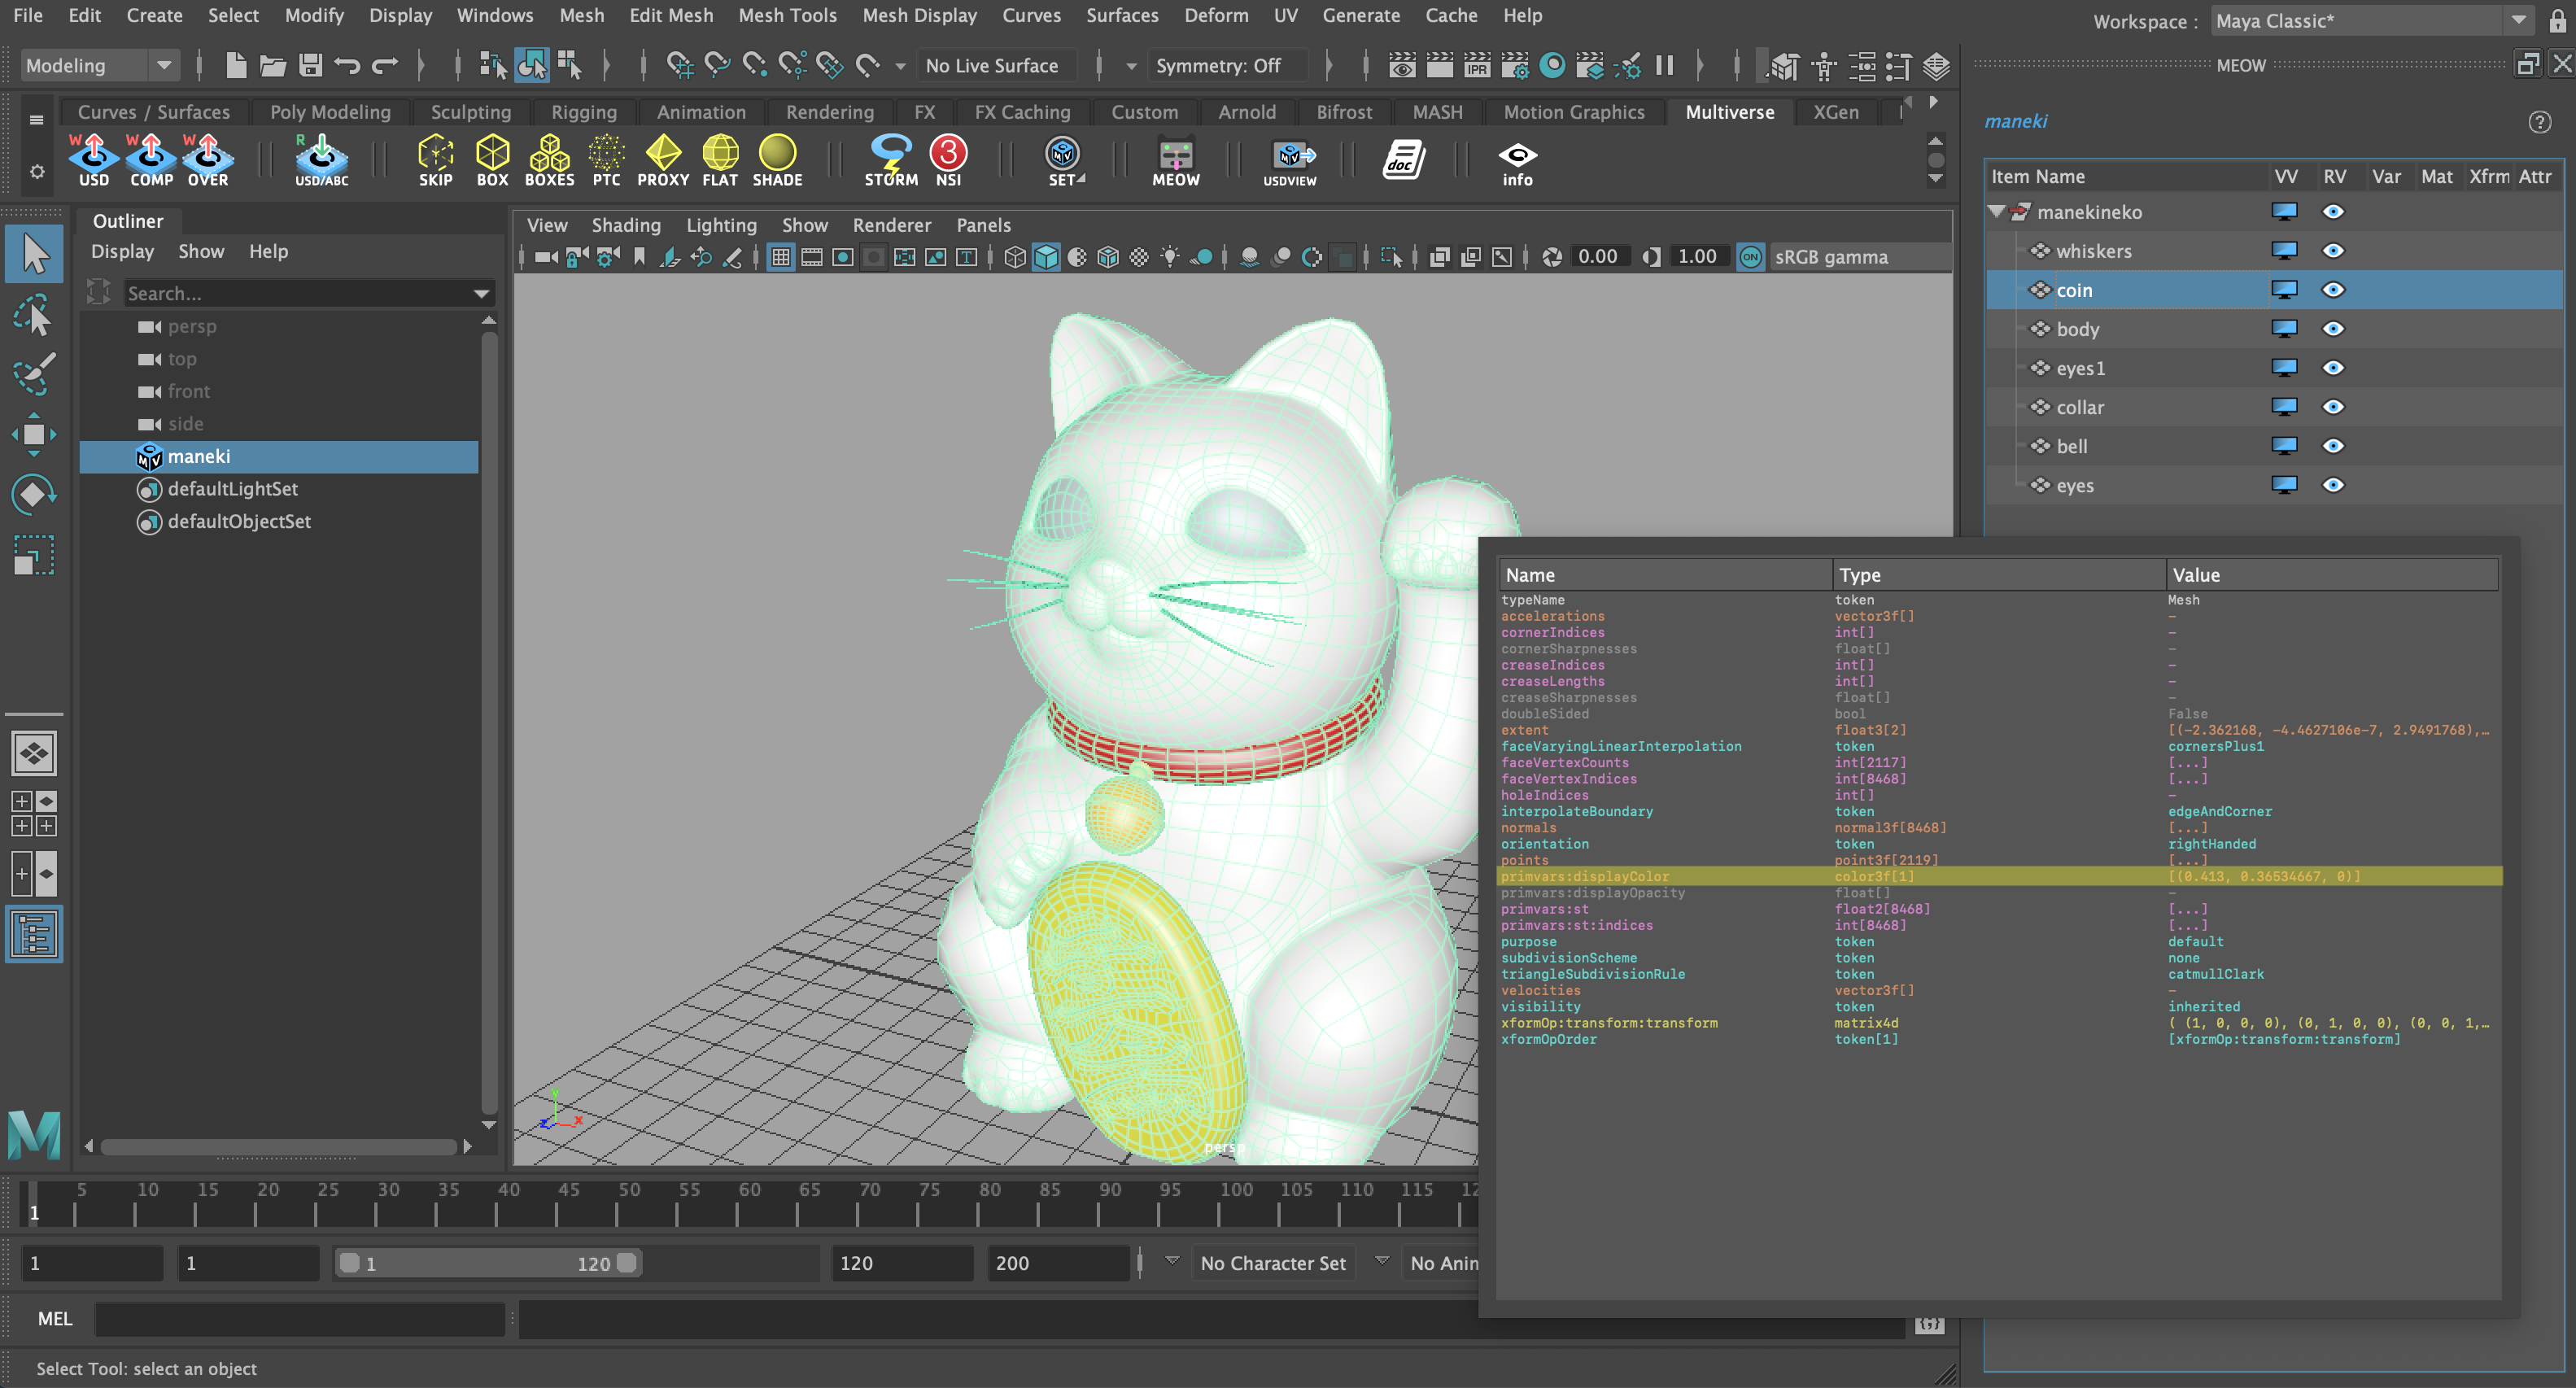 Display Color in the Multiverse Storm viewport and in the MEOW Property InfoPanel (MMB on Item Name)